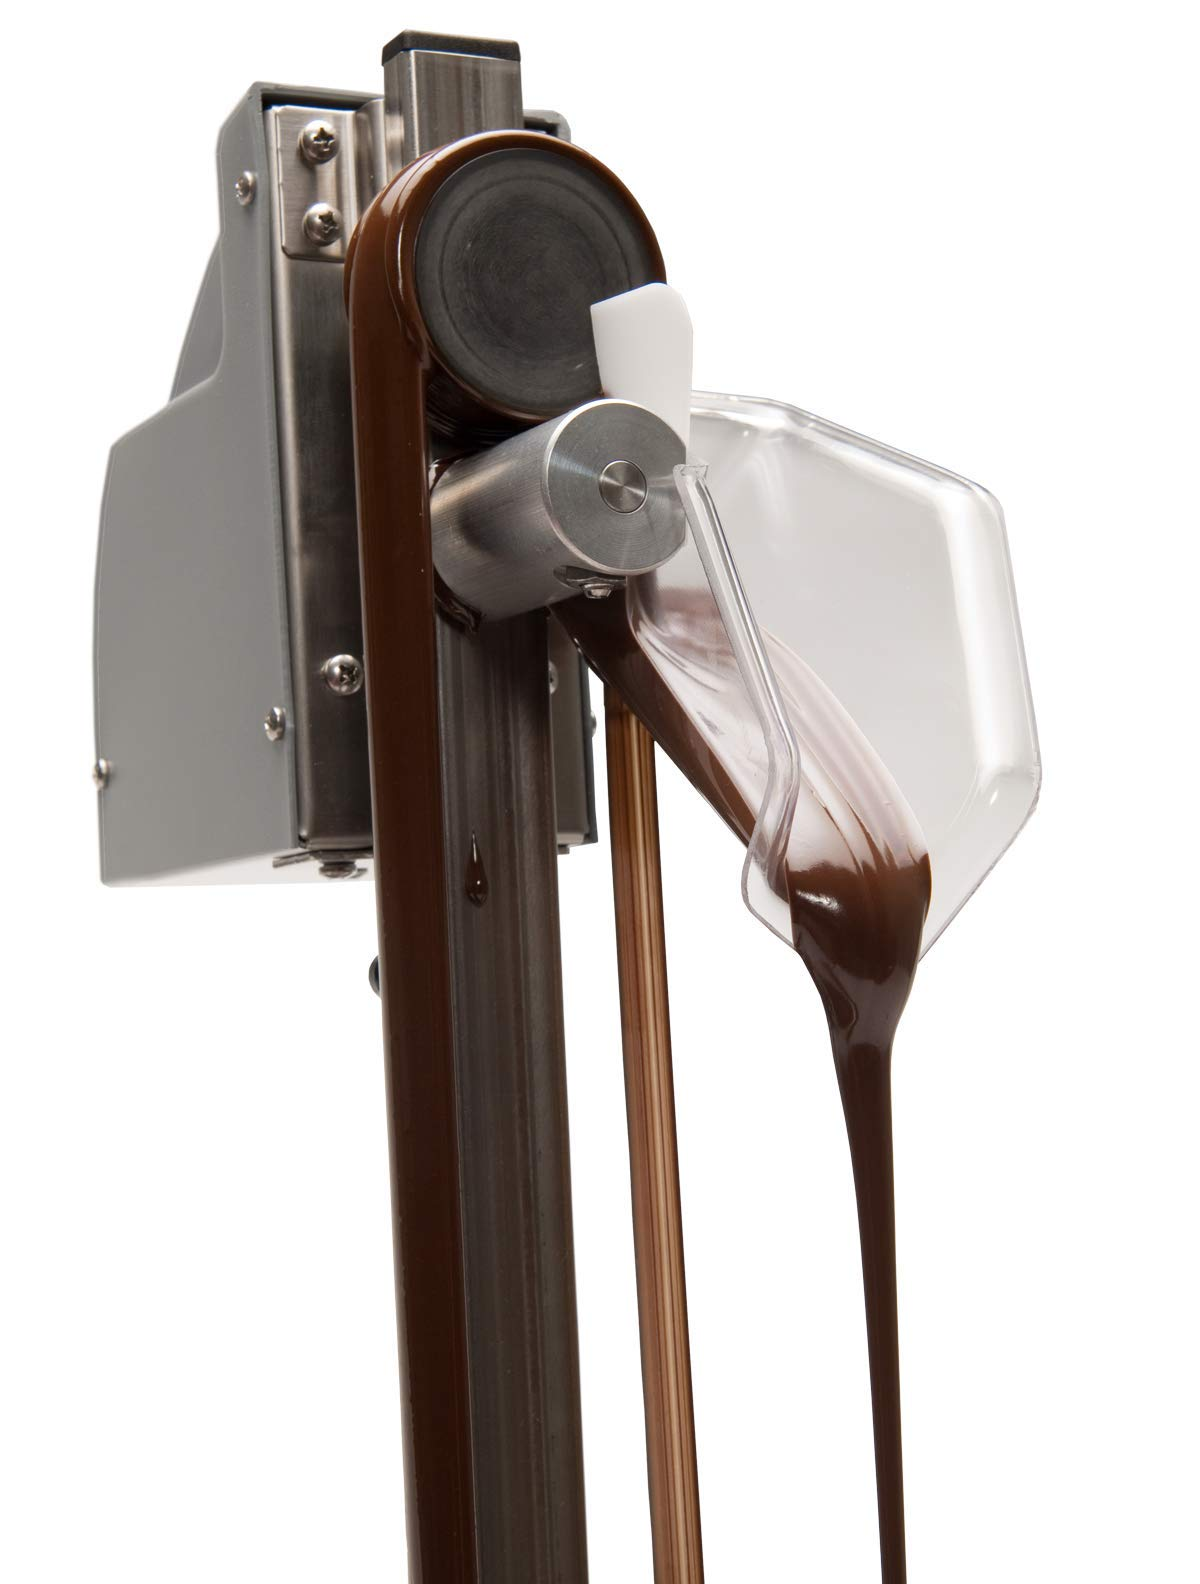 ChocoVision Skimmer Dispensing Attachment for Revolation 3Z Chocolate Tempering Machine